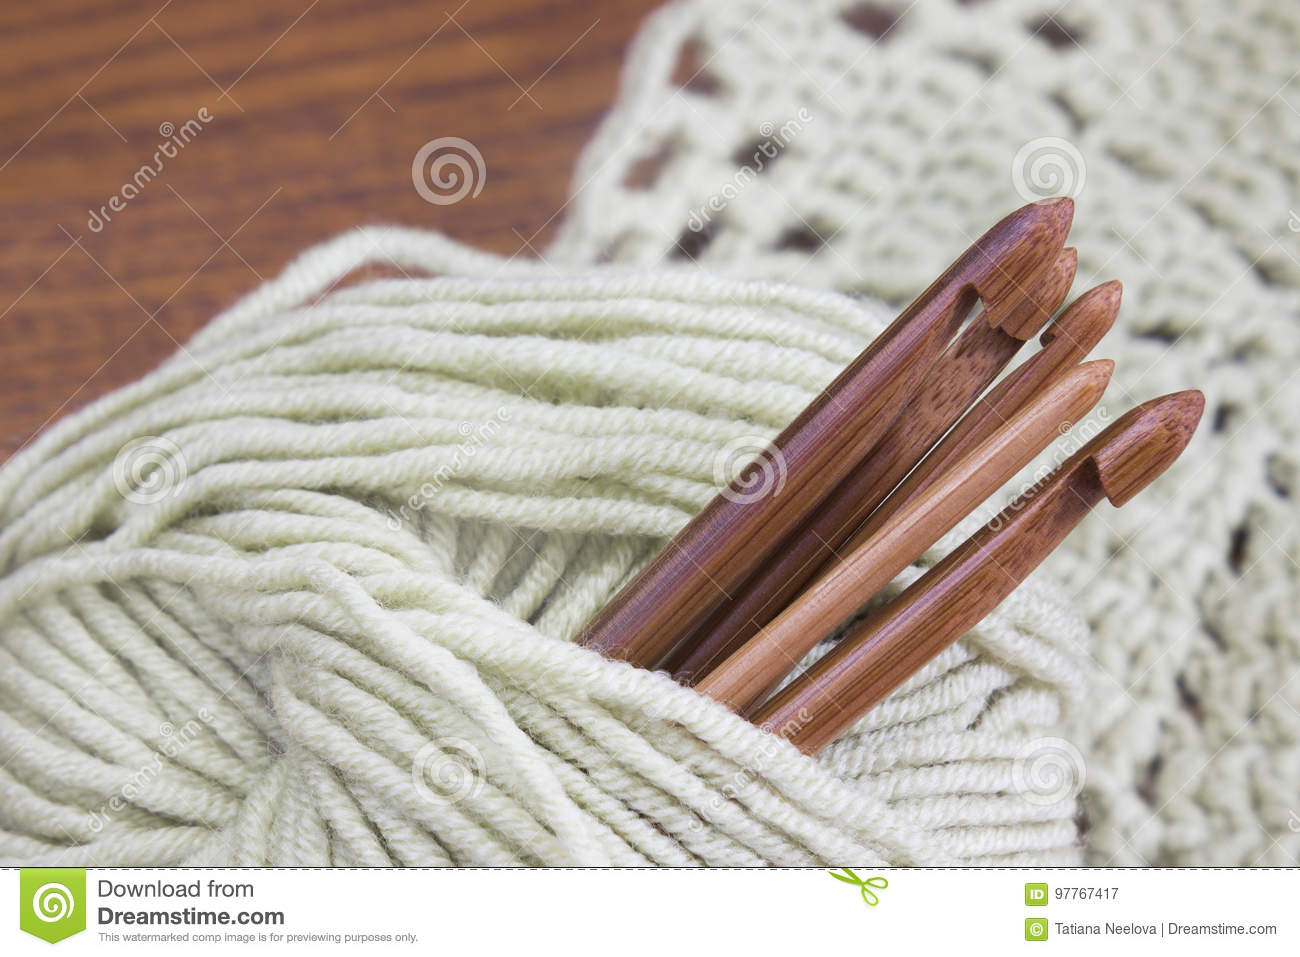 Creative work place for homemade crafts. Wooden natural bamboo crochet hooks, doily and yarn ball on the table.